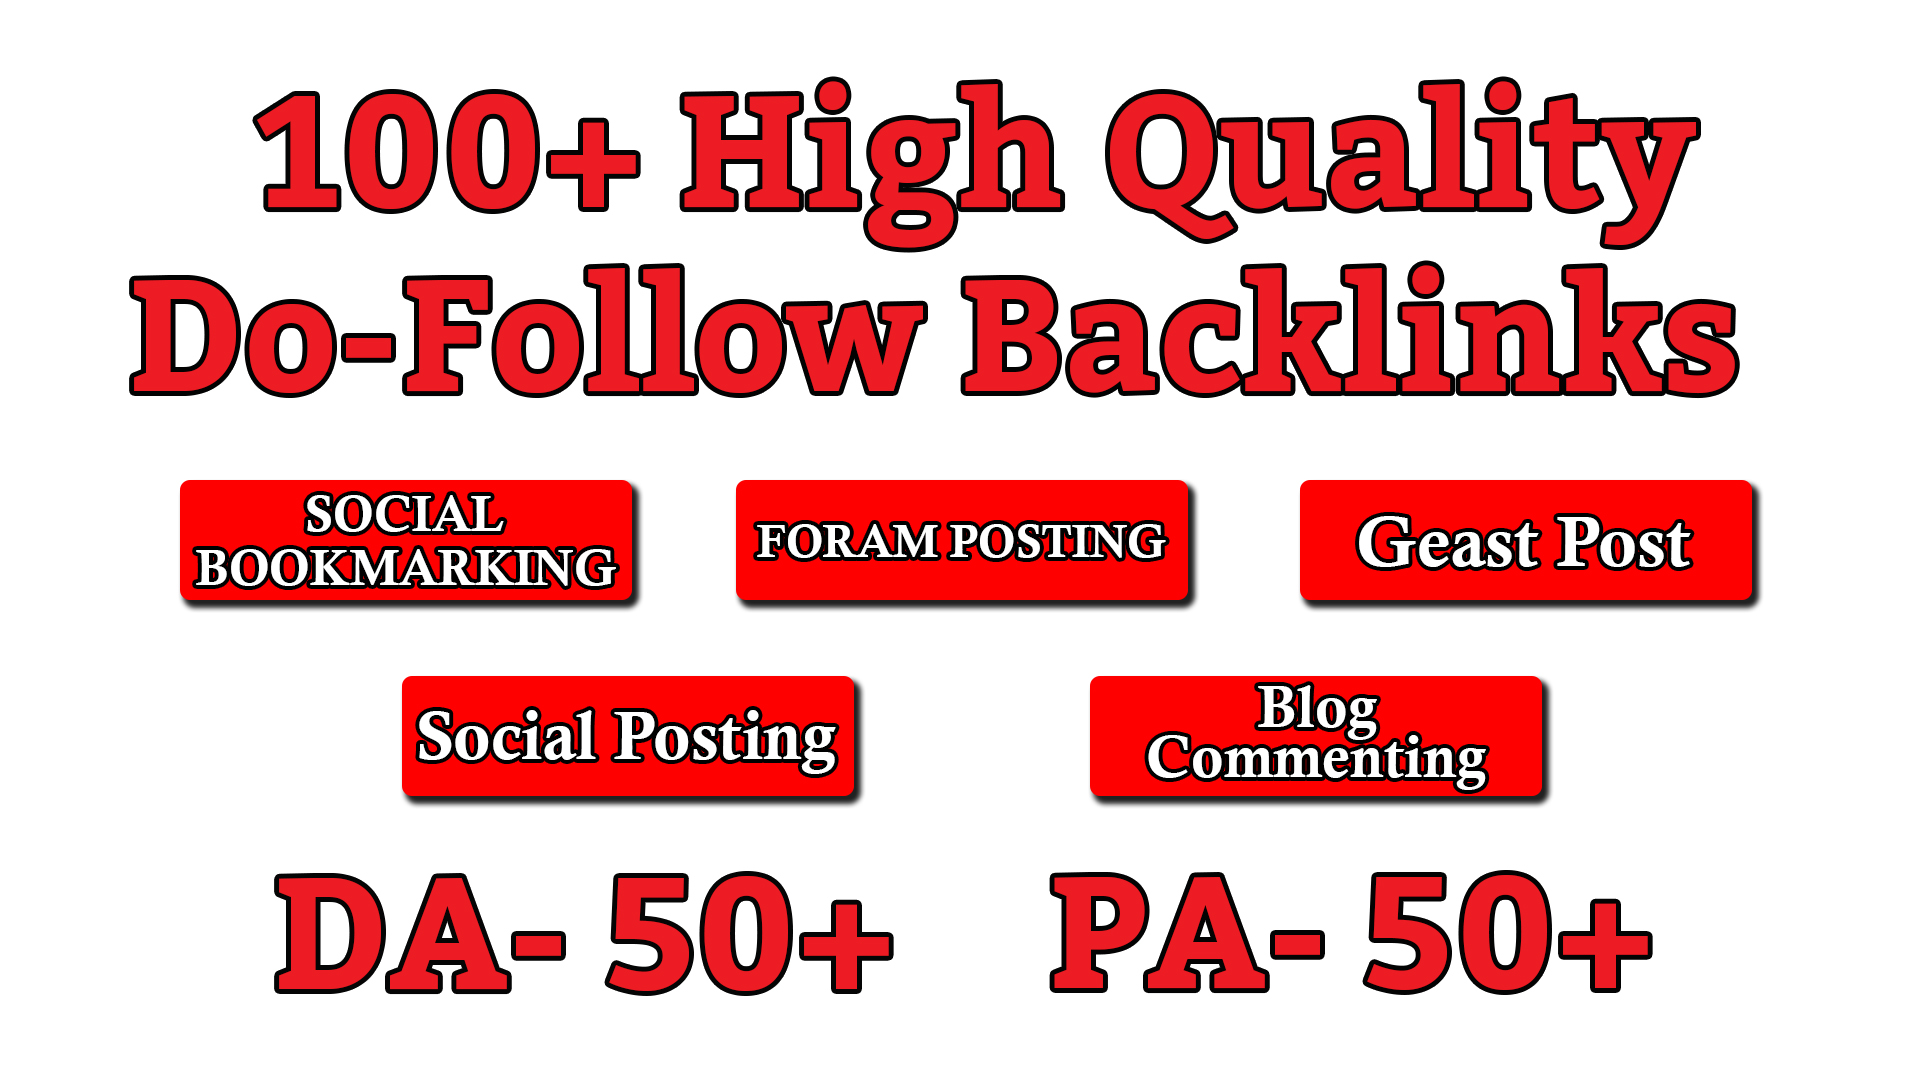 I Will Provide 100+ High Quality Forum Posting for SEO